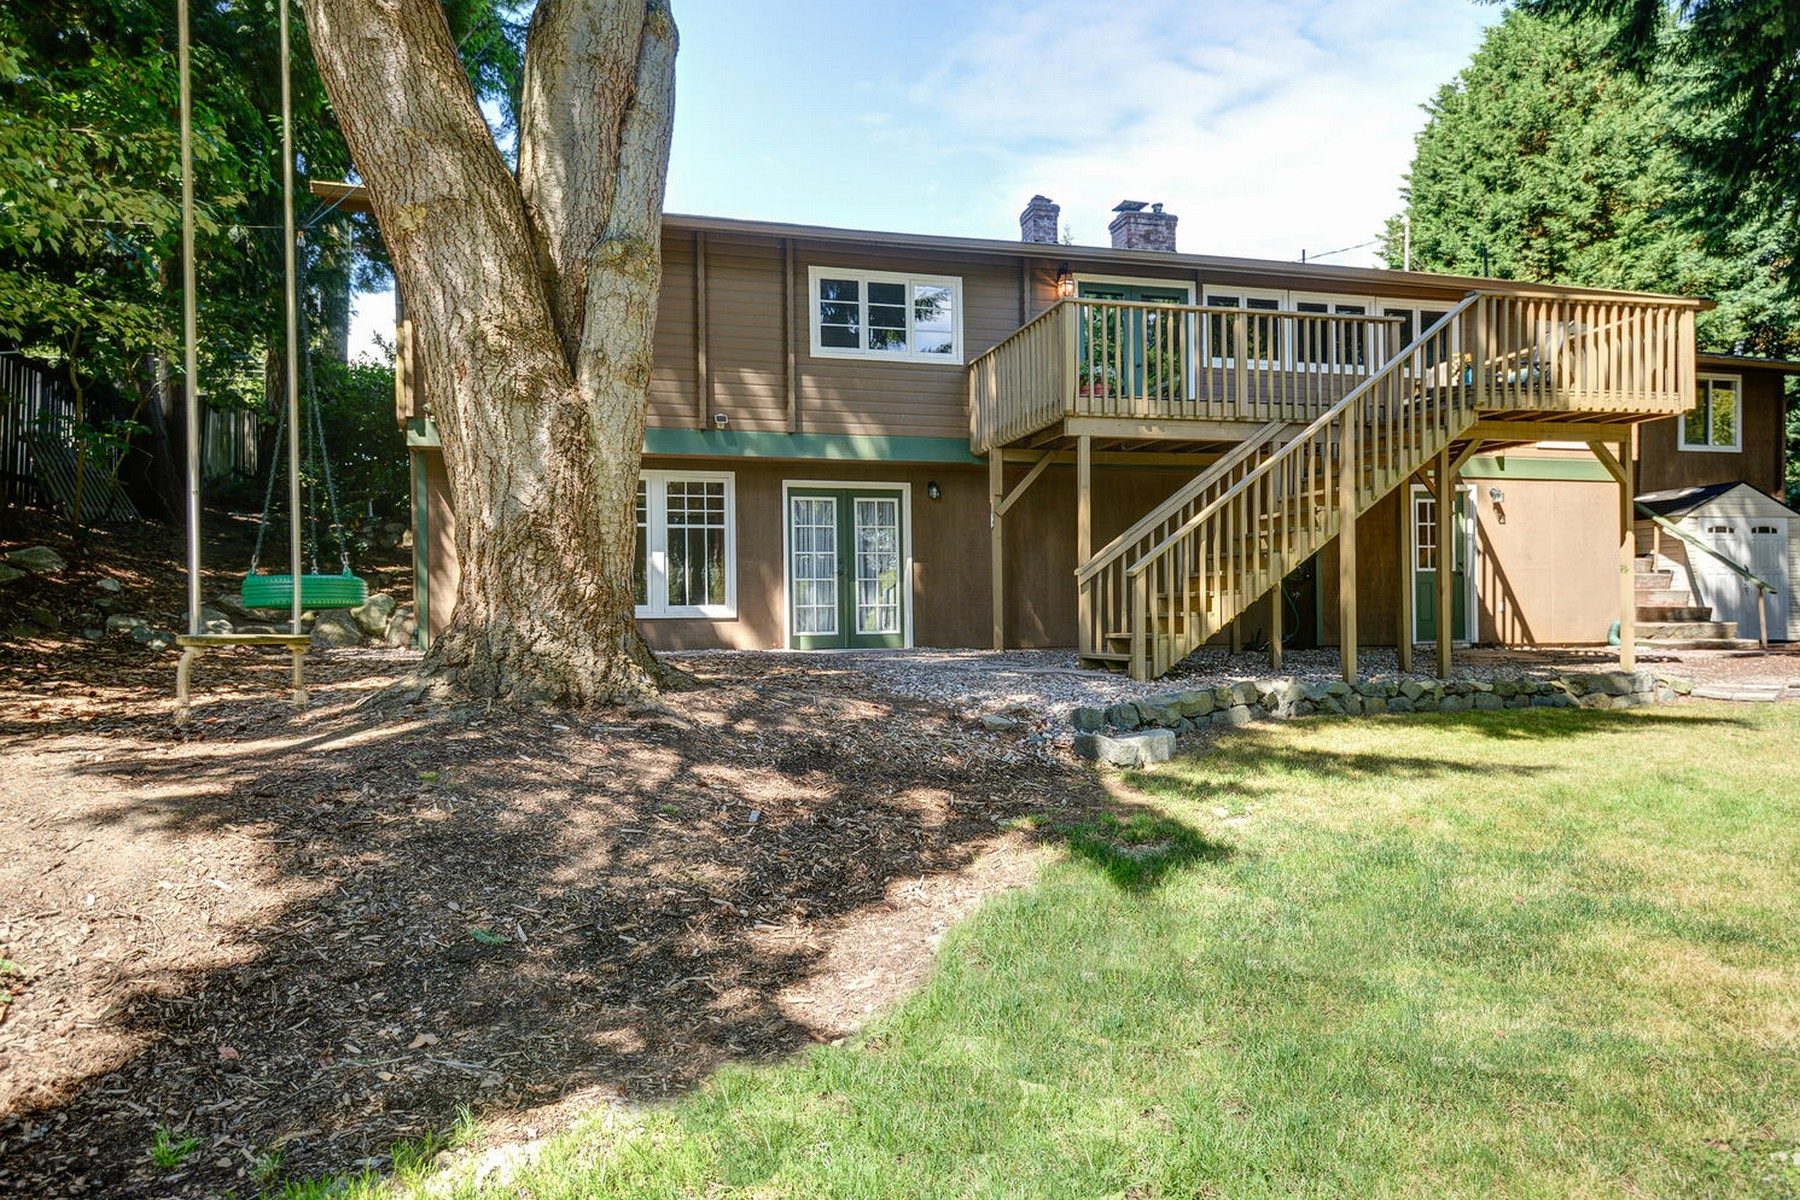 Additional photo for property listing at Rose Hill Remodel 9330 132nd Ave NE Redmond, Washington 98052 United States